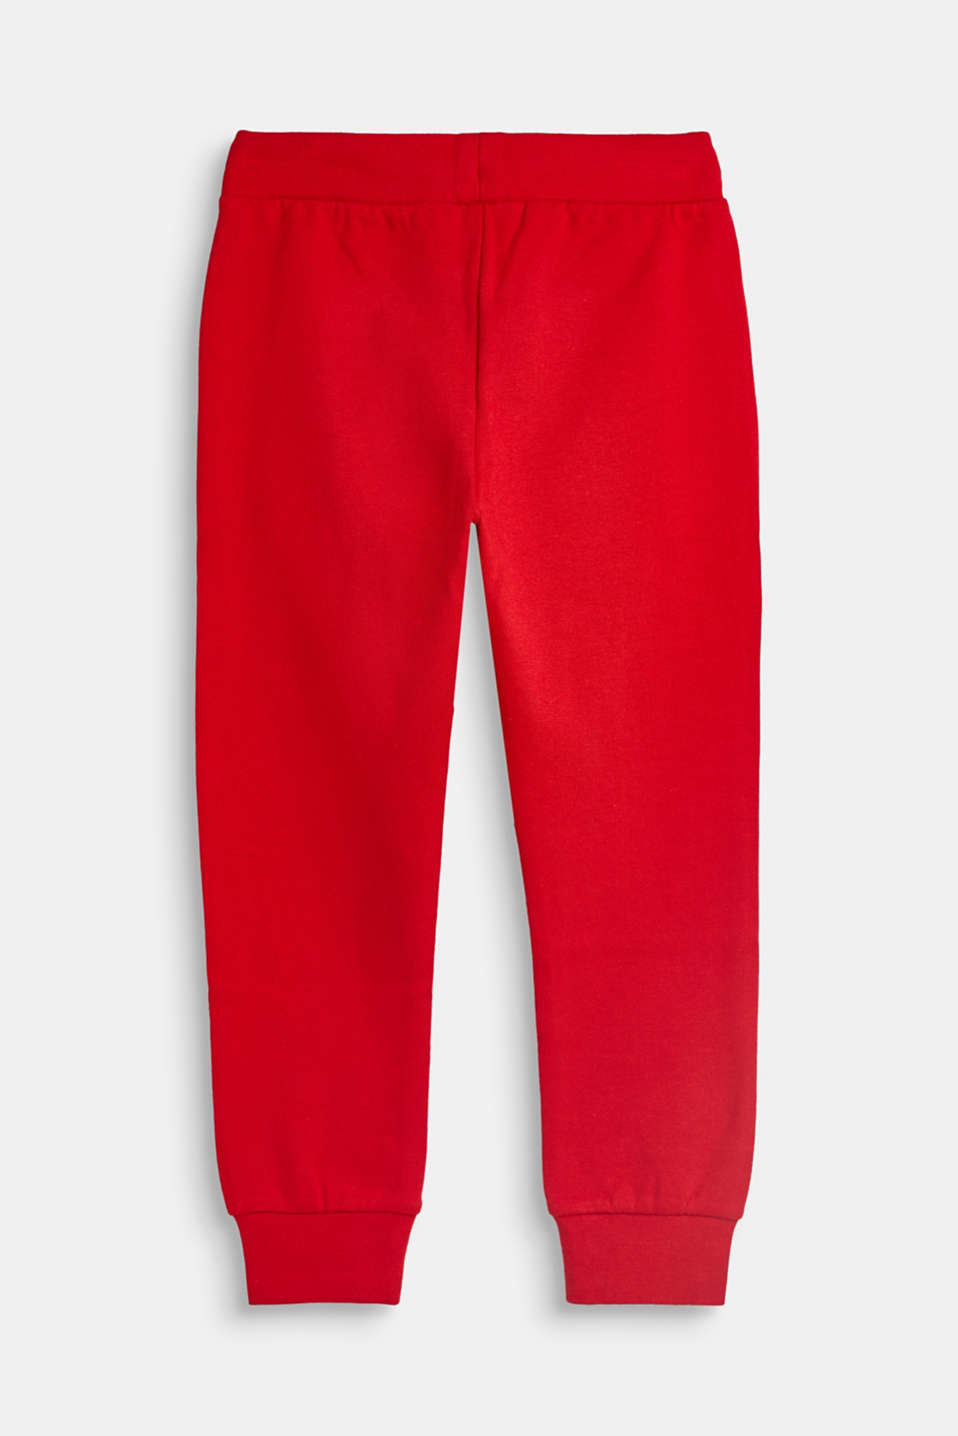 Pants knitted, LCRED, detail image number 1